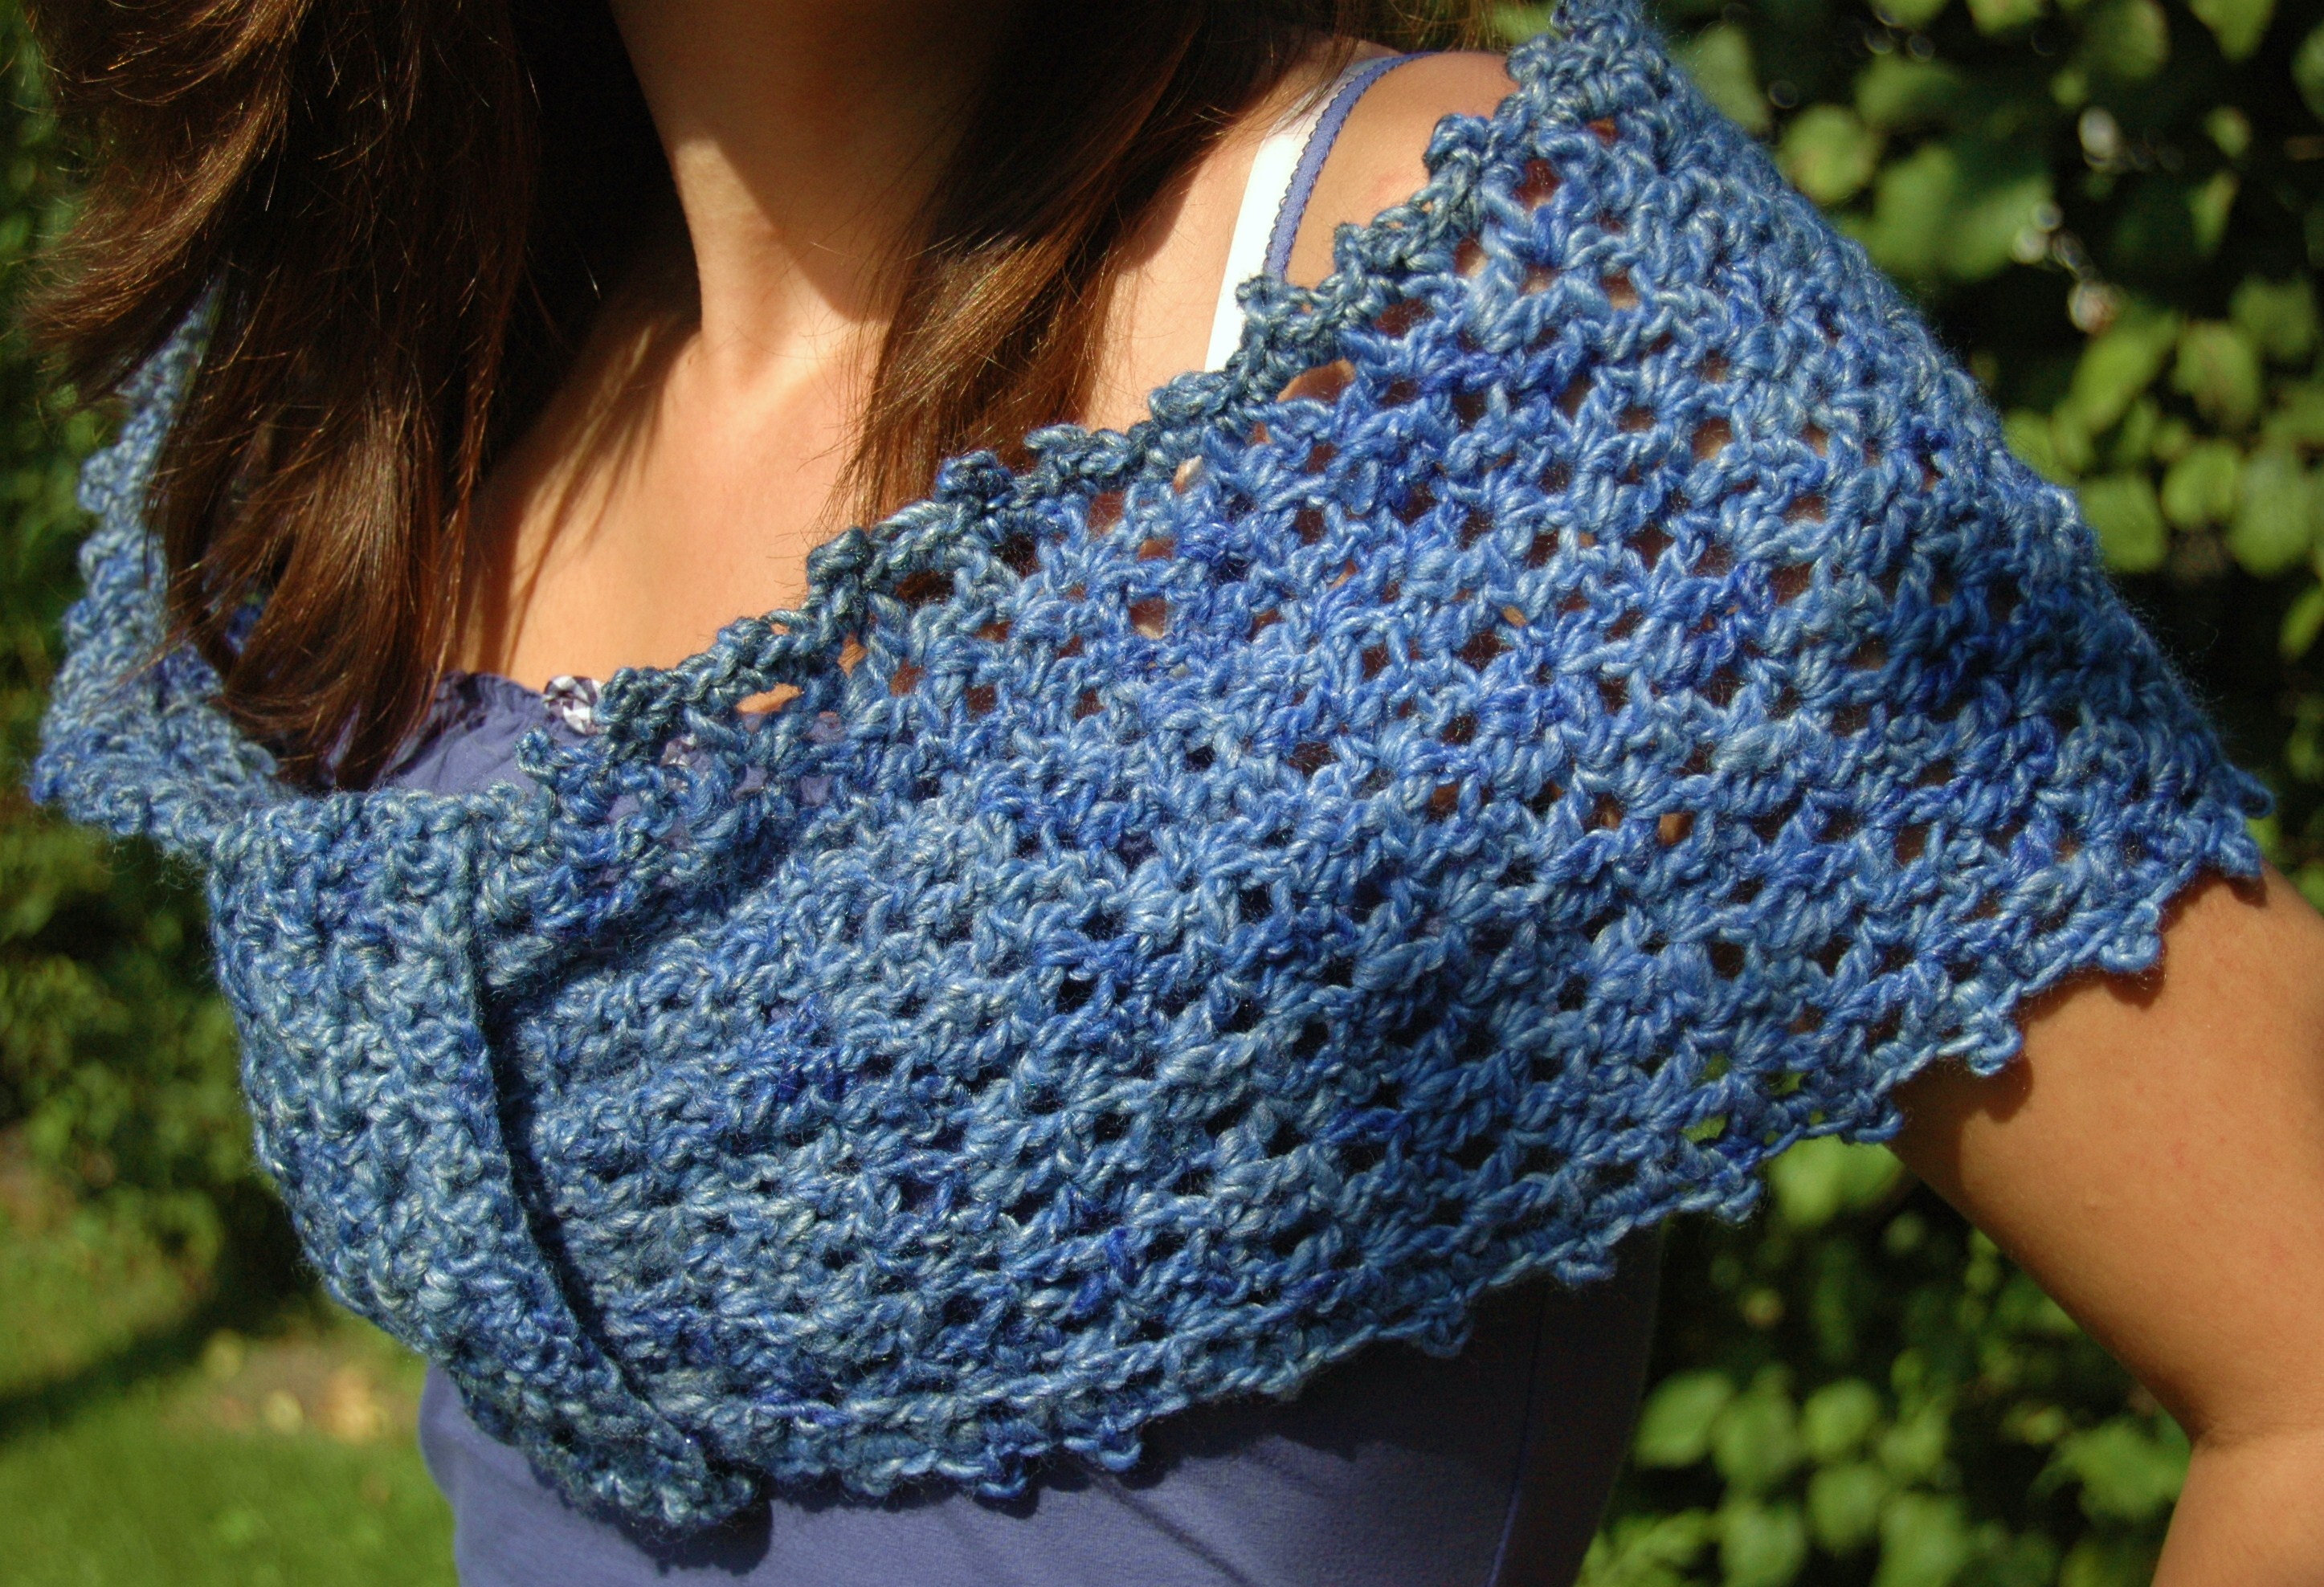 crochet pattern central directory of free, online